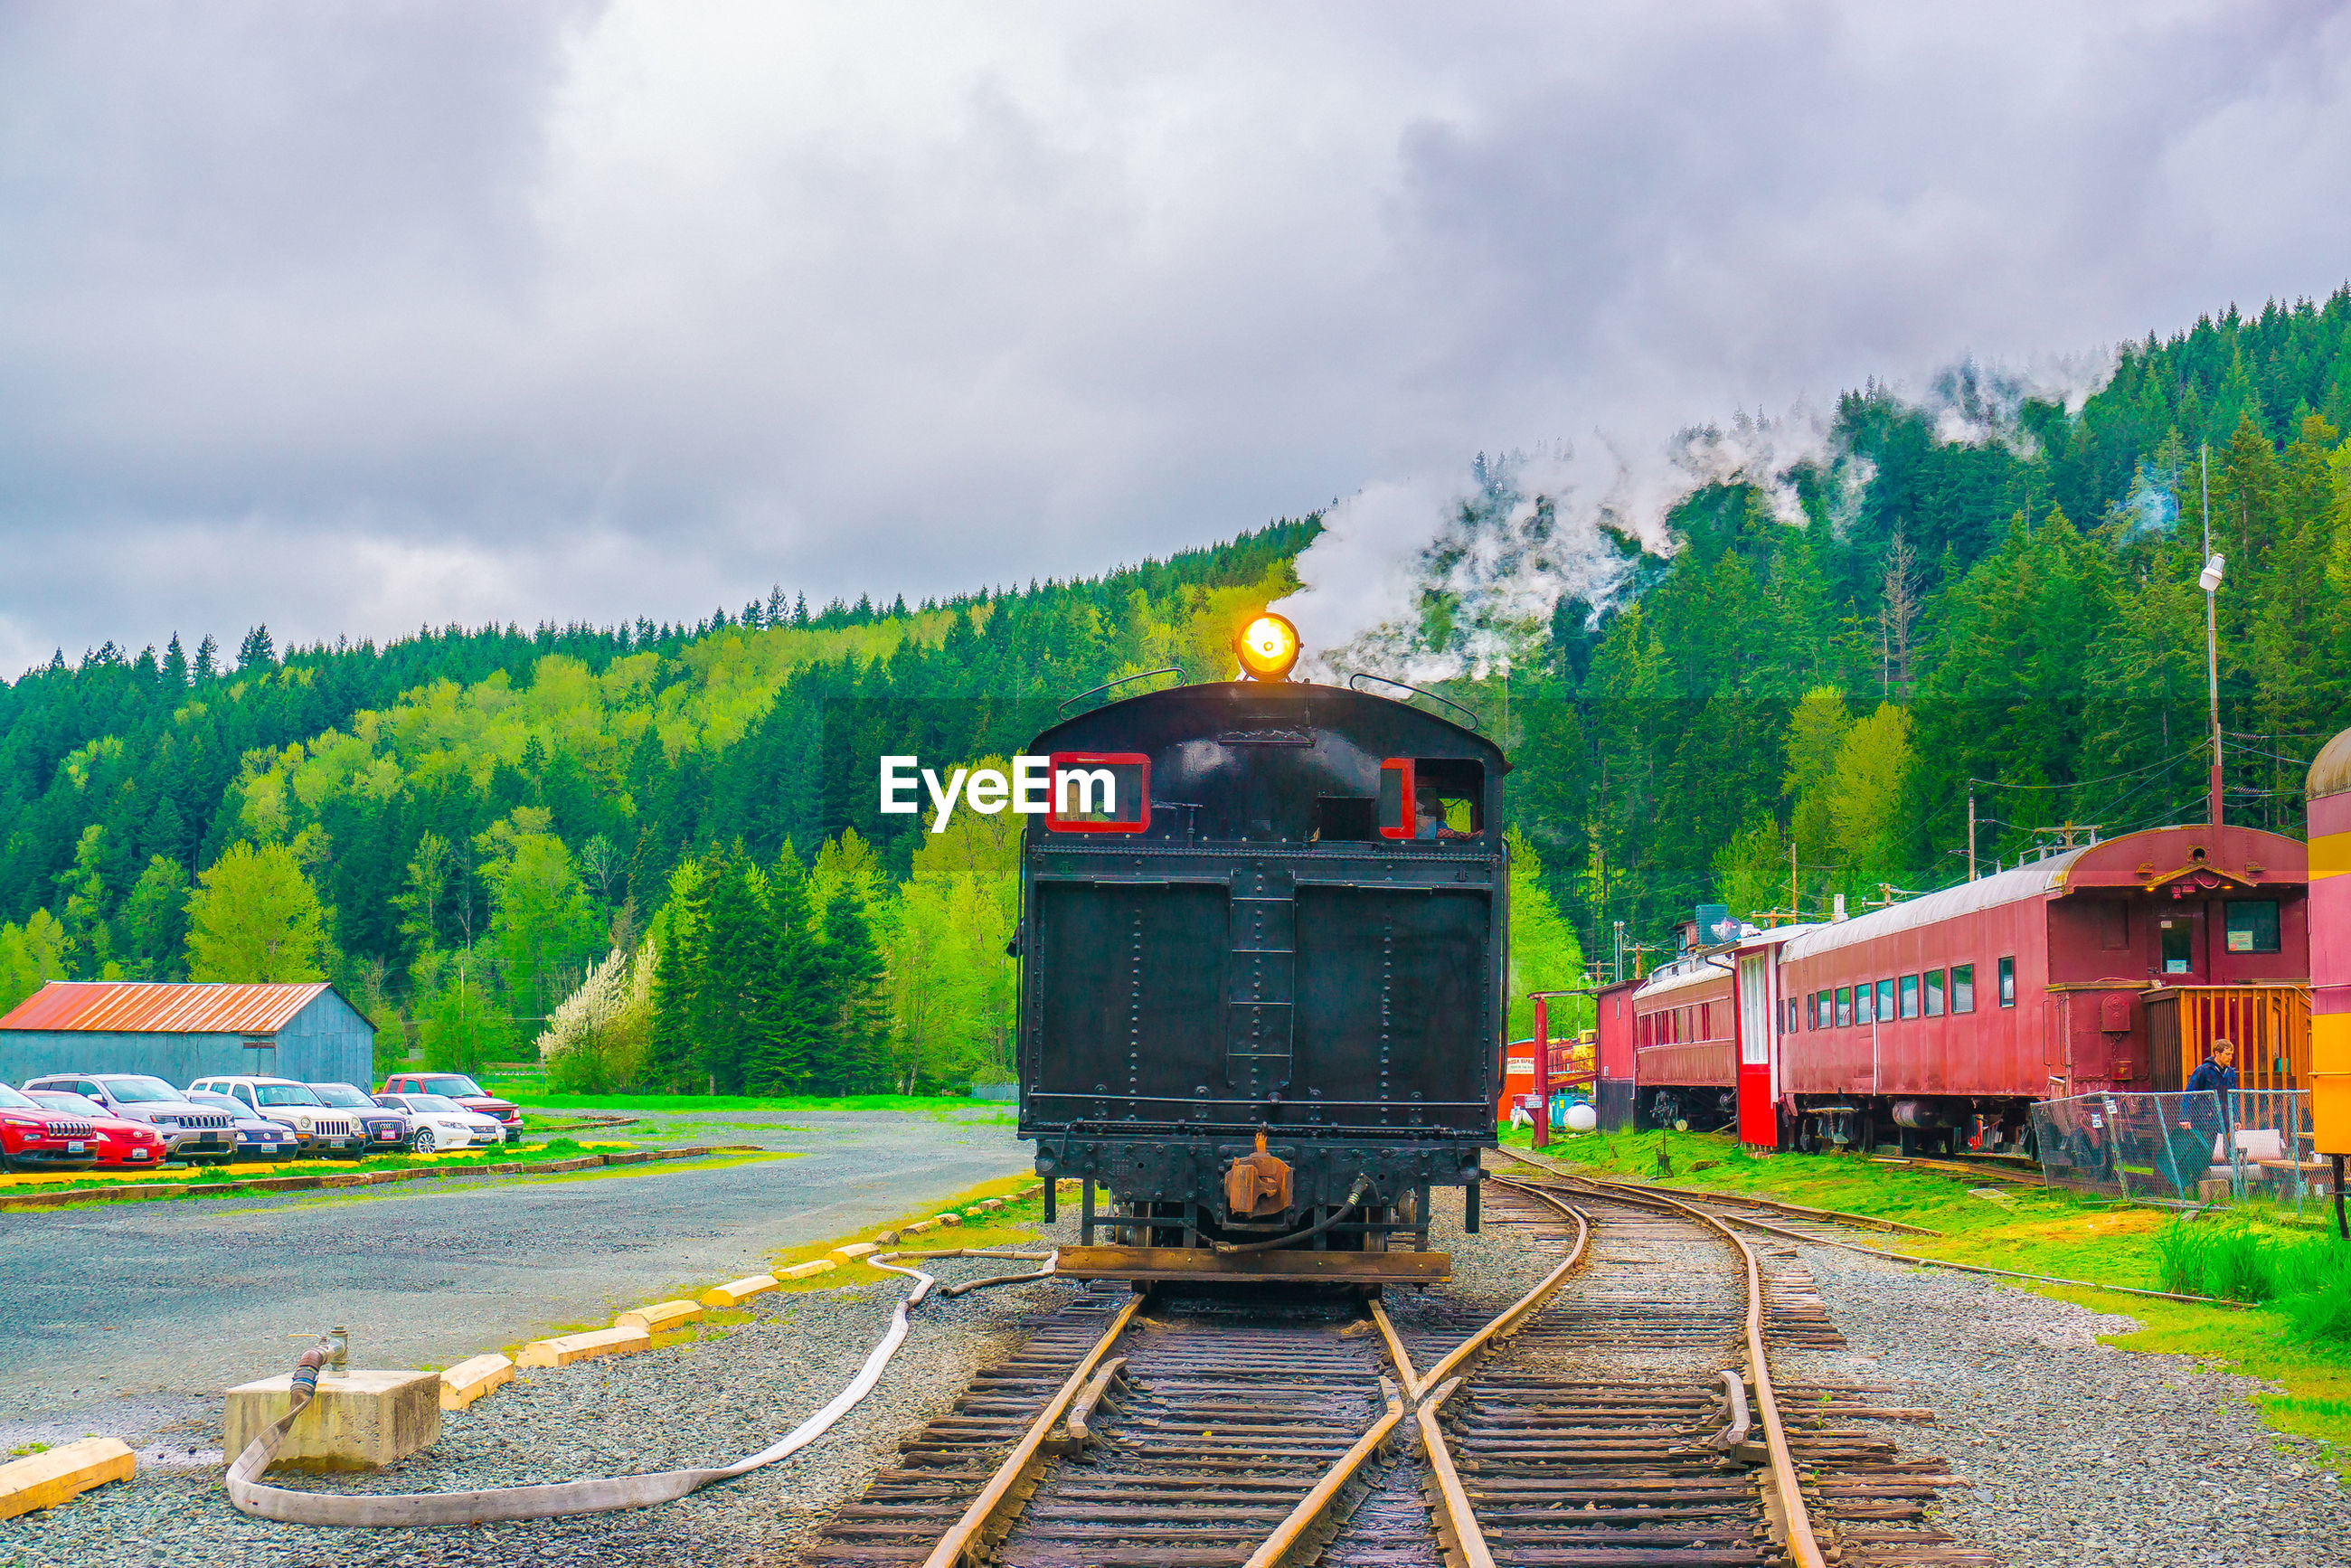 Trains on railroad track against cloudy sky